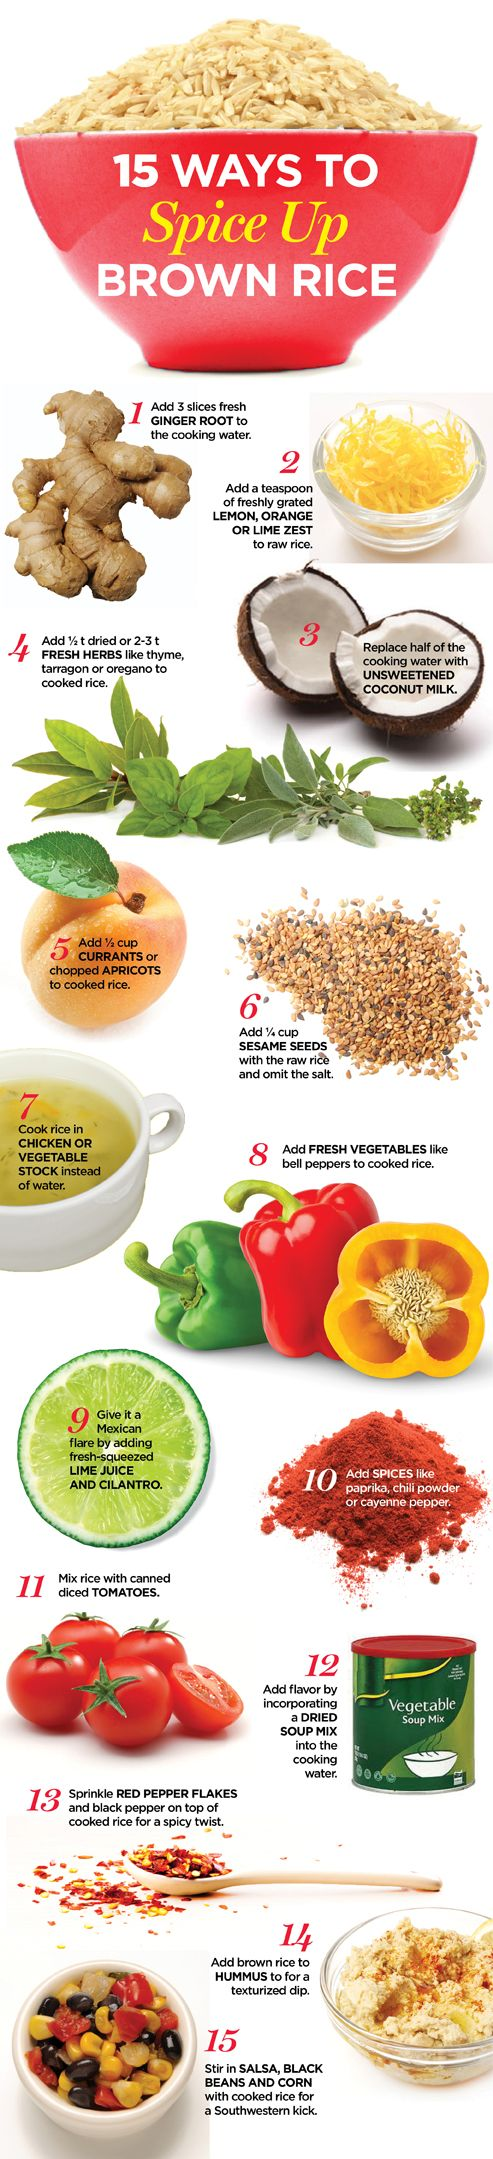 15 Ways To Spice Up Brown Rice